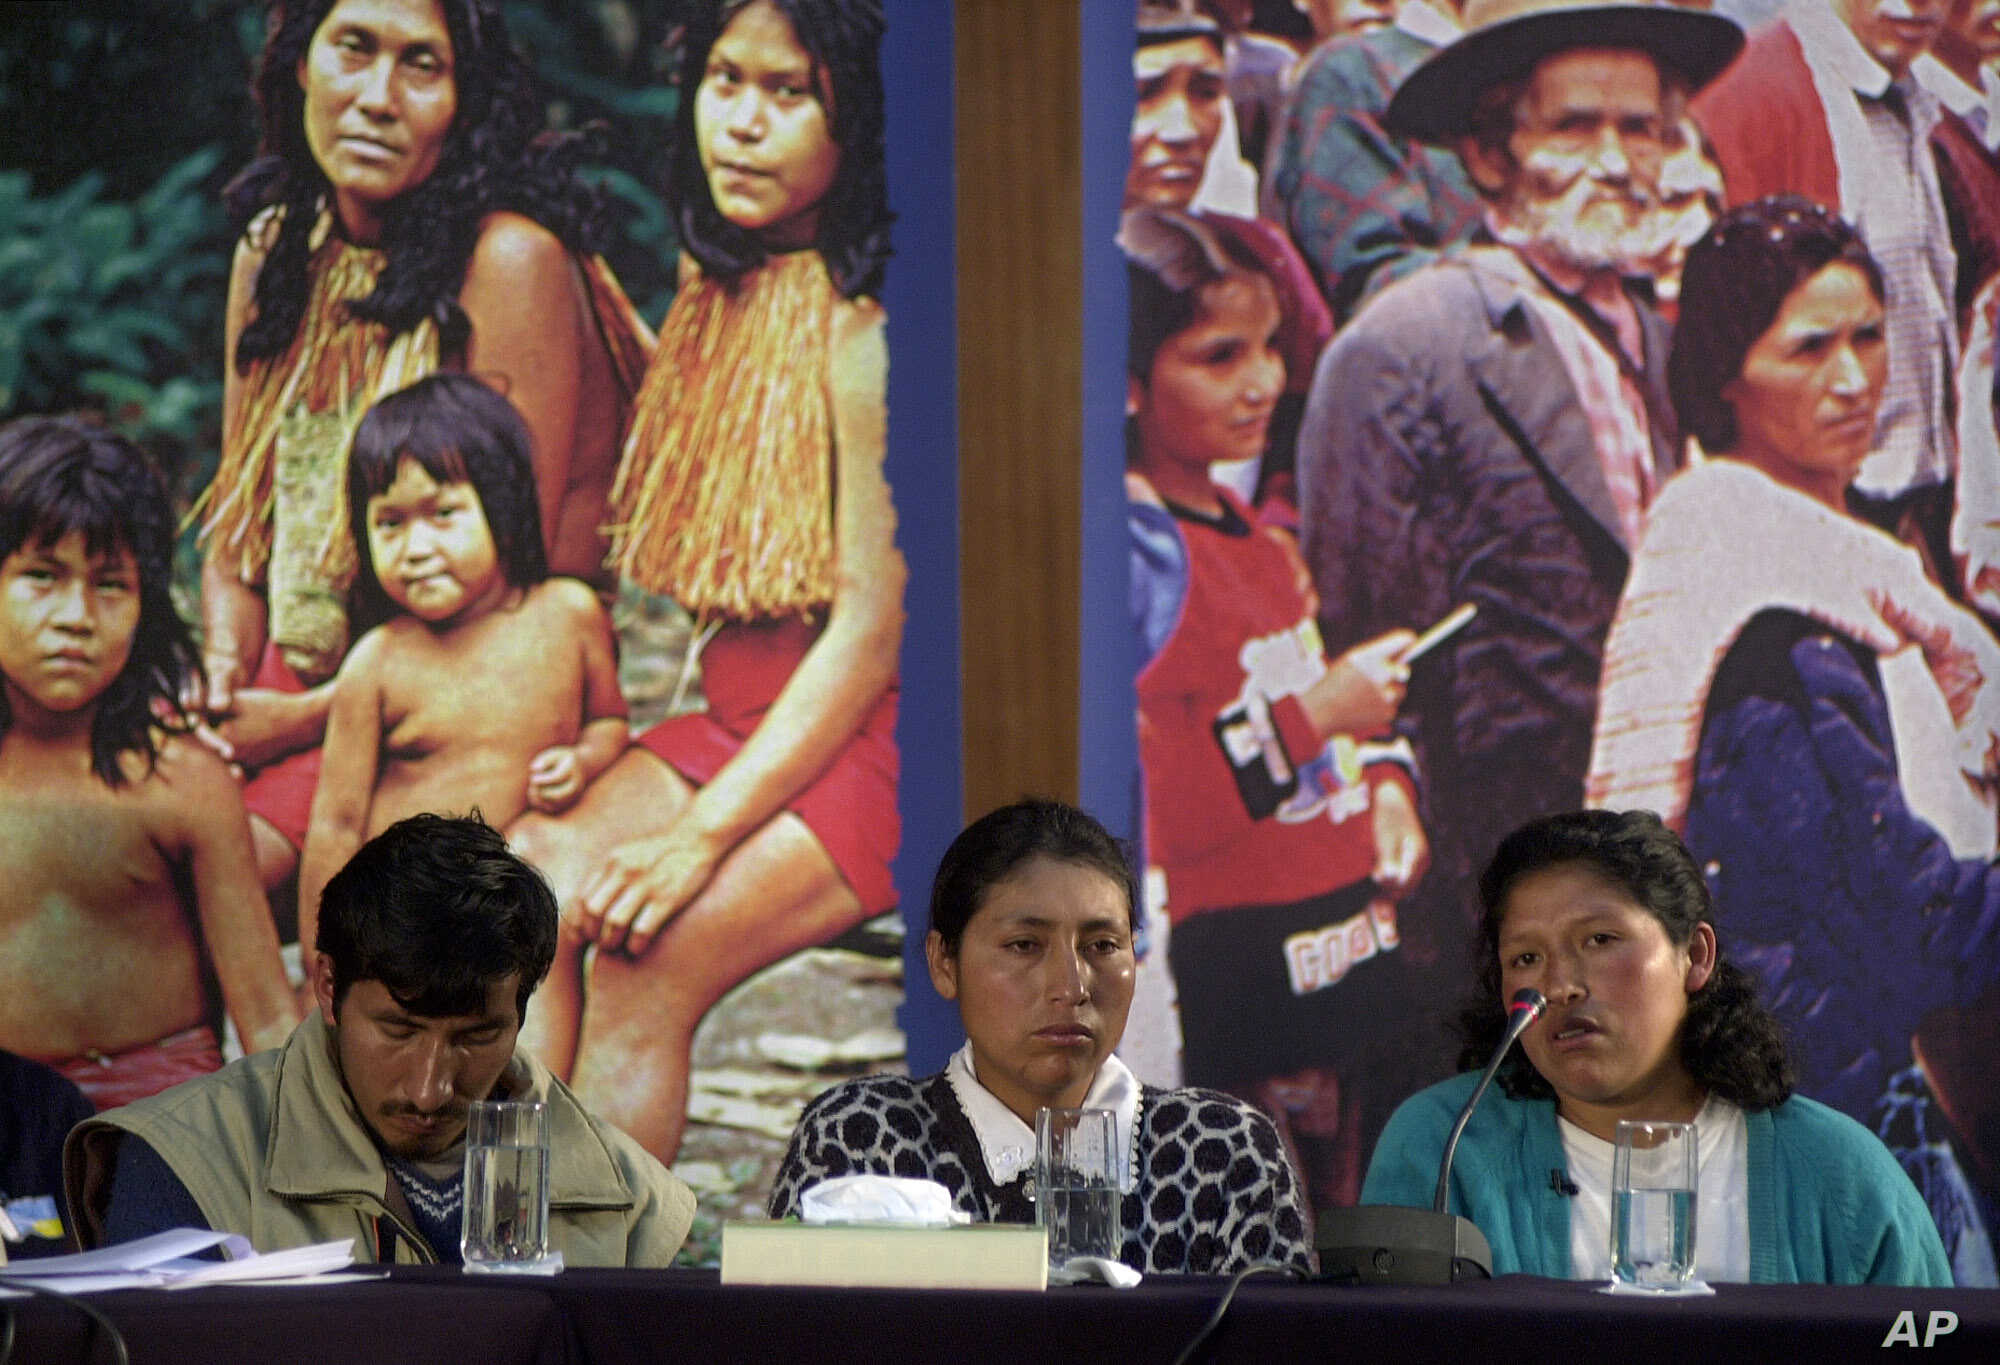 Silvia Flores, right, testifies while Celestina Flores, center,  and her husband listen, during a public hearing of Peru's Truth and Reconciliation Commission in Lima, Sept. 10,  2002. The commission has begun public sessions to hear testimonies by w...